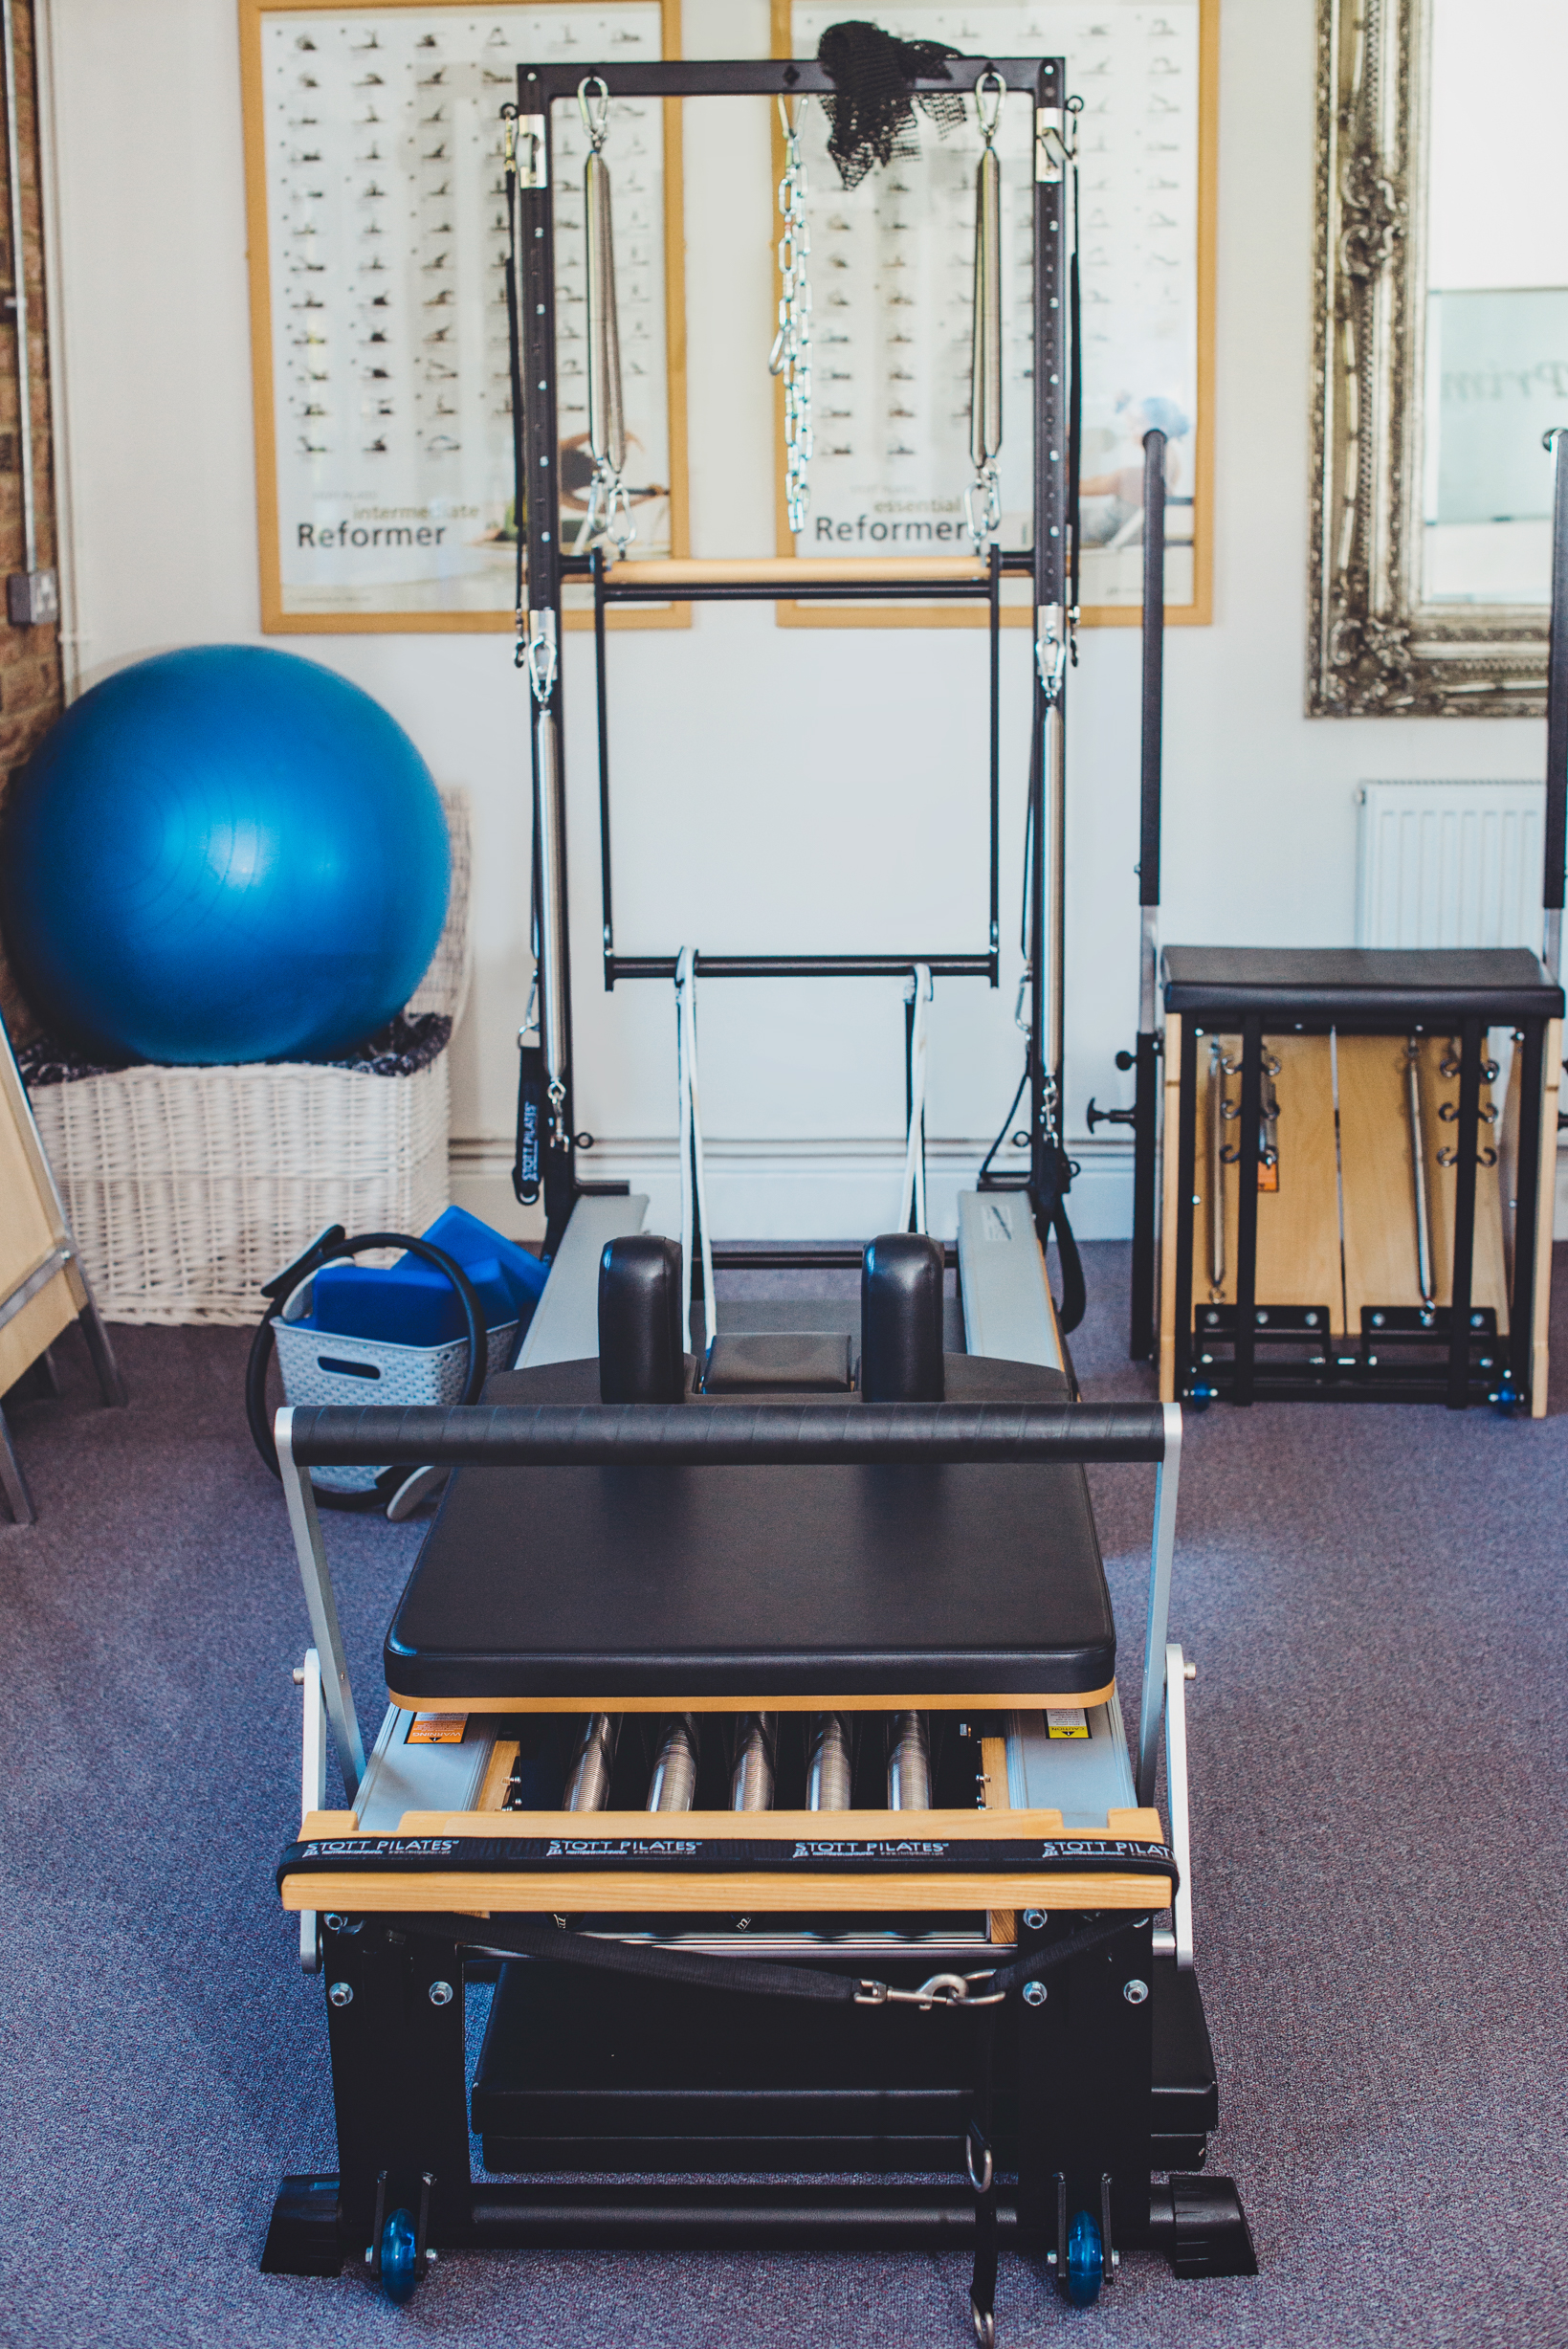 Reformer - The Reformer is the premier piece of Pilates equipment. It is a half bed like frame with a carriage on it, which rolls forward and backwards on wheels within the frame. The carriage is attached to one end of the reformer by springs which can be adjusted to different levels of resistance. There are shoulder rests at one end which stop you from sliding off as you move.The Reformer is very versatile. Exercises can be done laying down, sitting, standing, pulling the straps, pushing against the footbar, with additional equipment, upside-down, sideways and the list goes on.Exercises done on the Reformer increase core and functional strength, increase muscular endurance, improve posture and alignment, develop long lean muscles, reduce body fat, rehabilitate and prevent injuries.